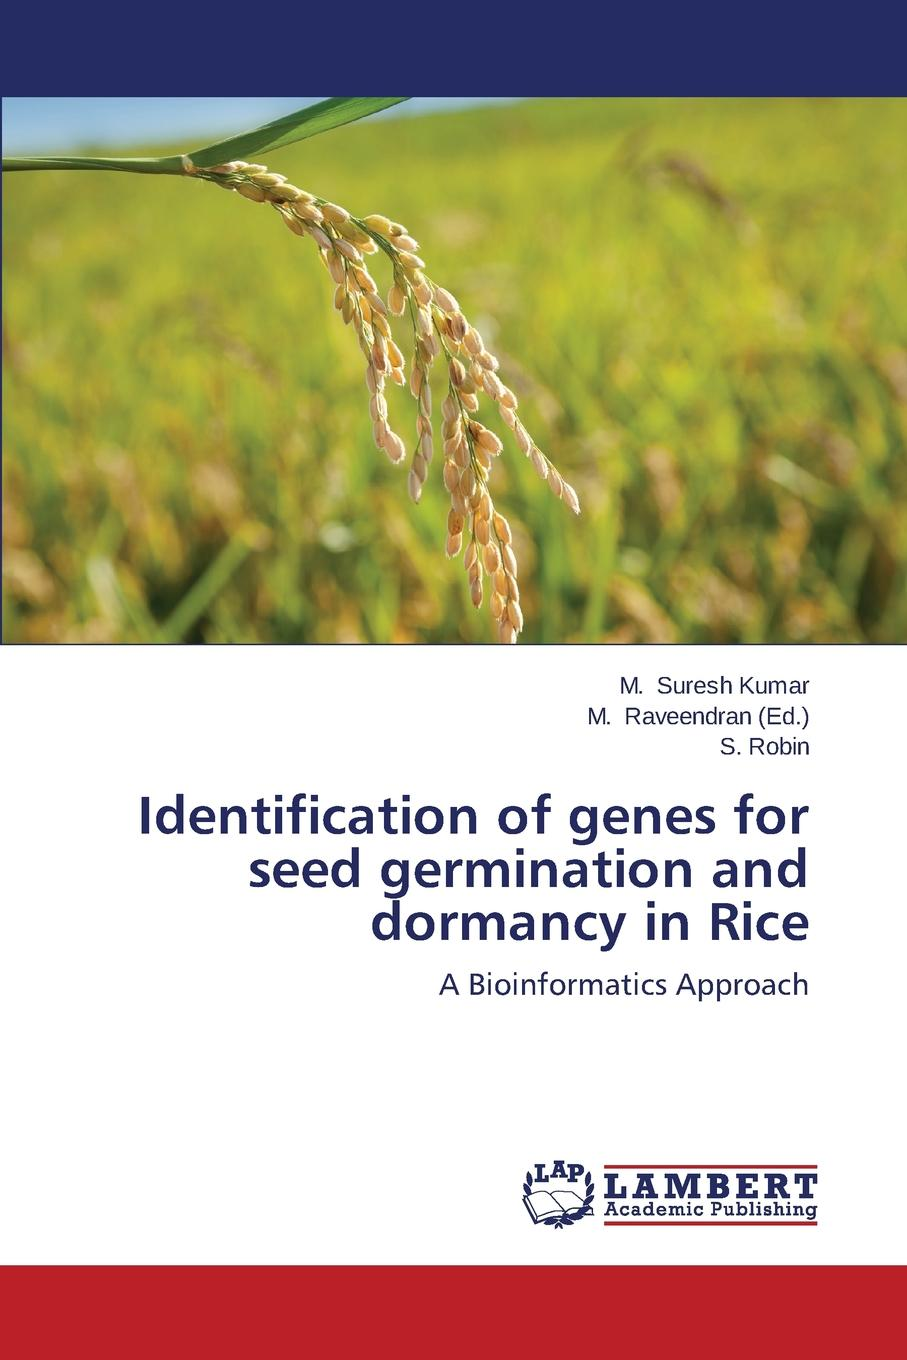 Suresh Kumar M., Robin S. Identification of genes for seed germination and dormancy in Rice b supka magdolna aba novak vilmos